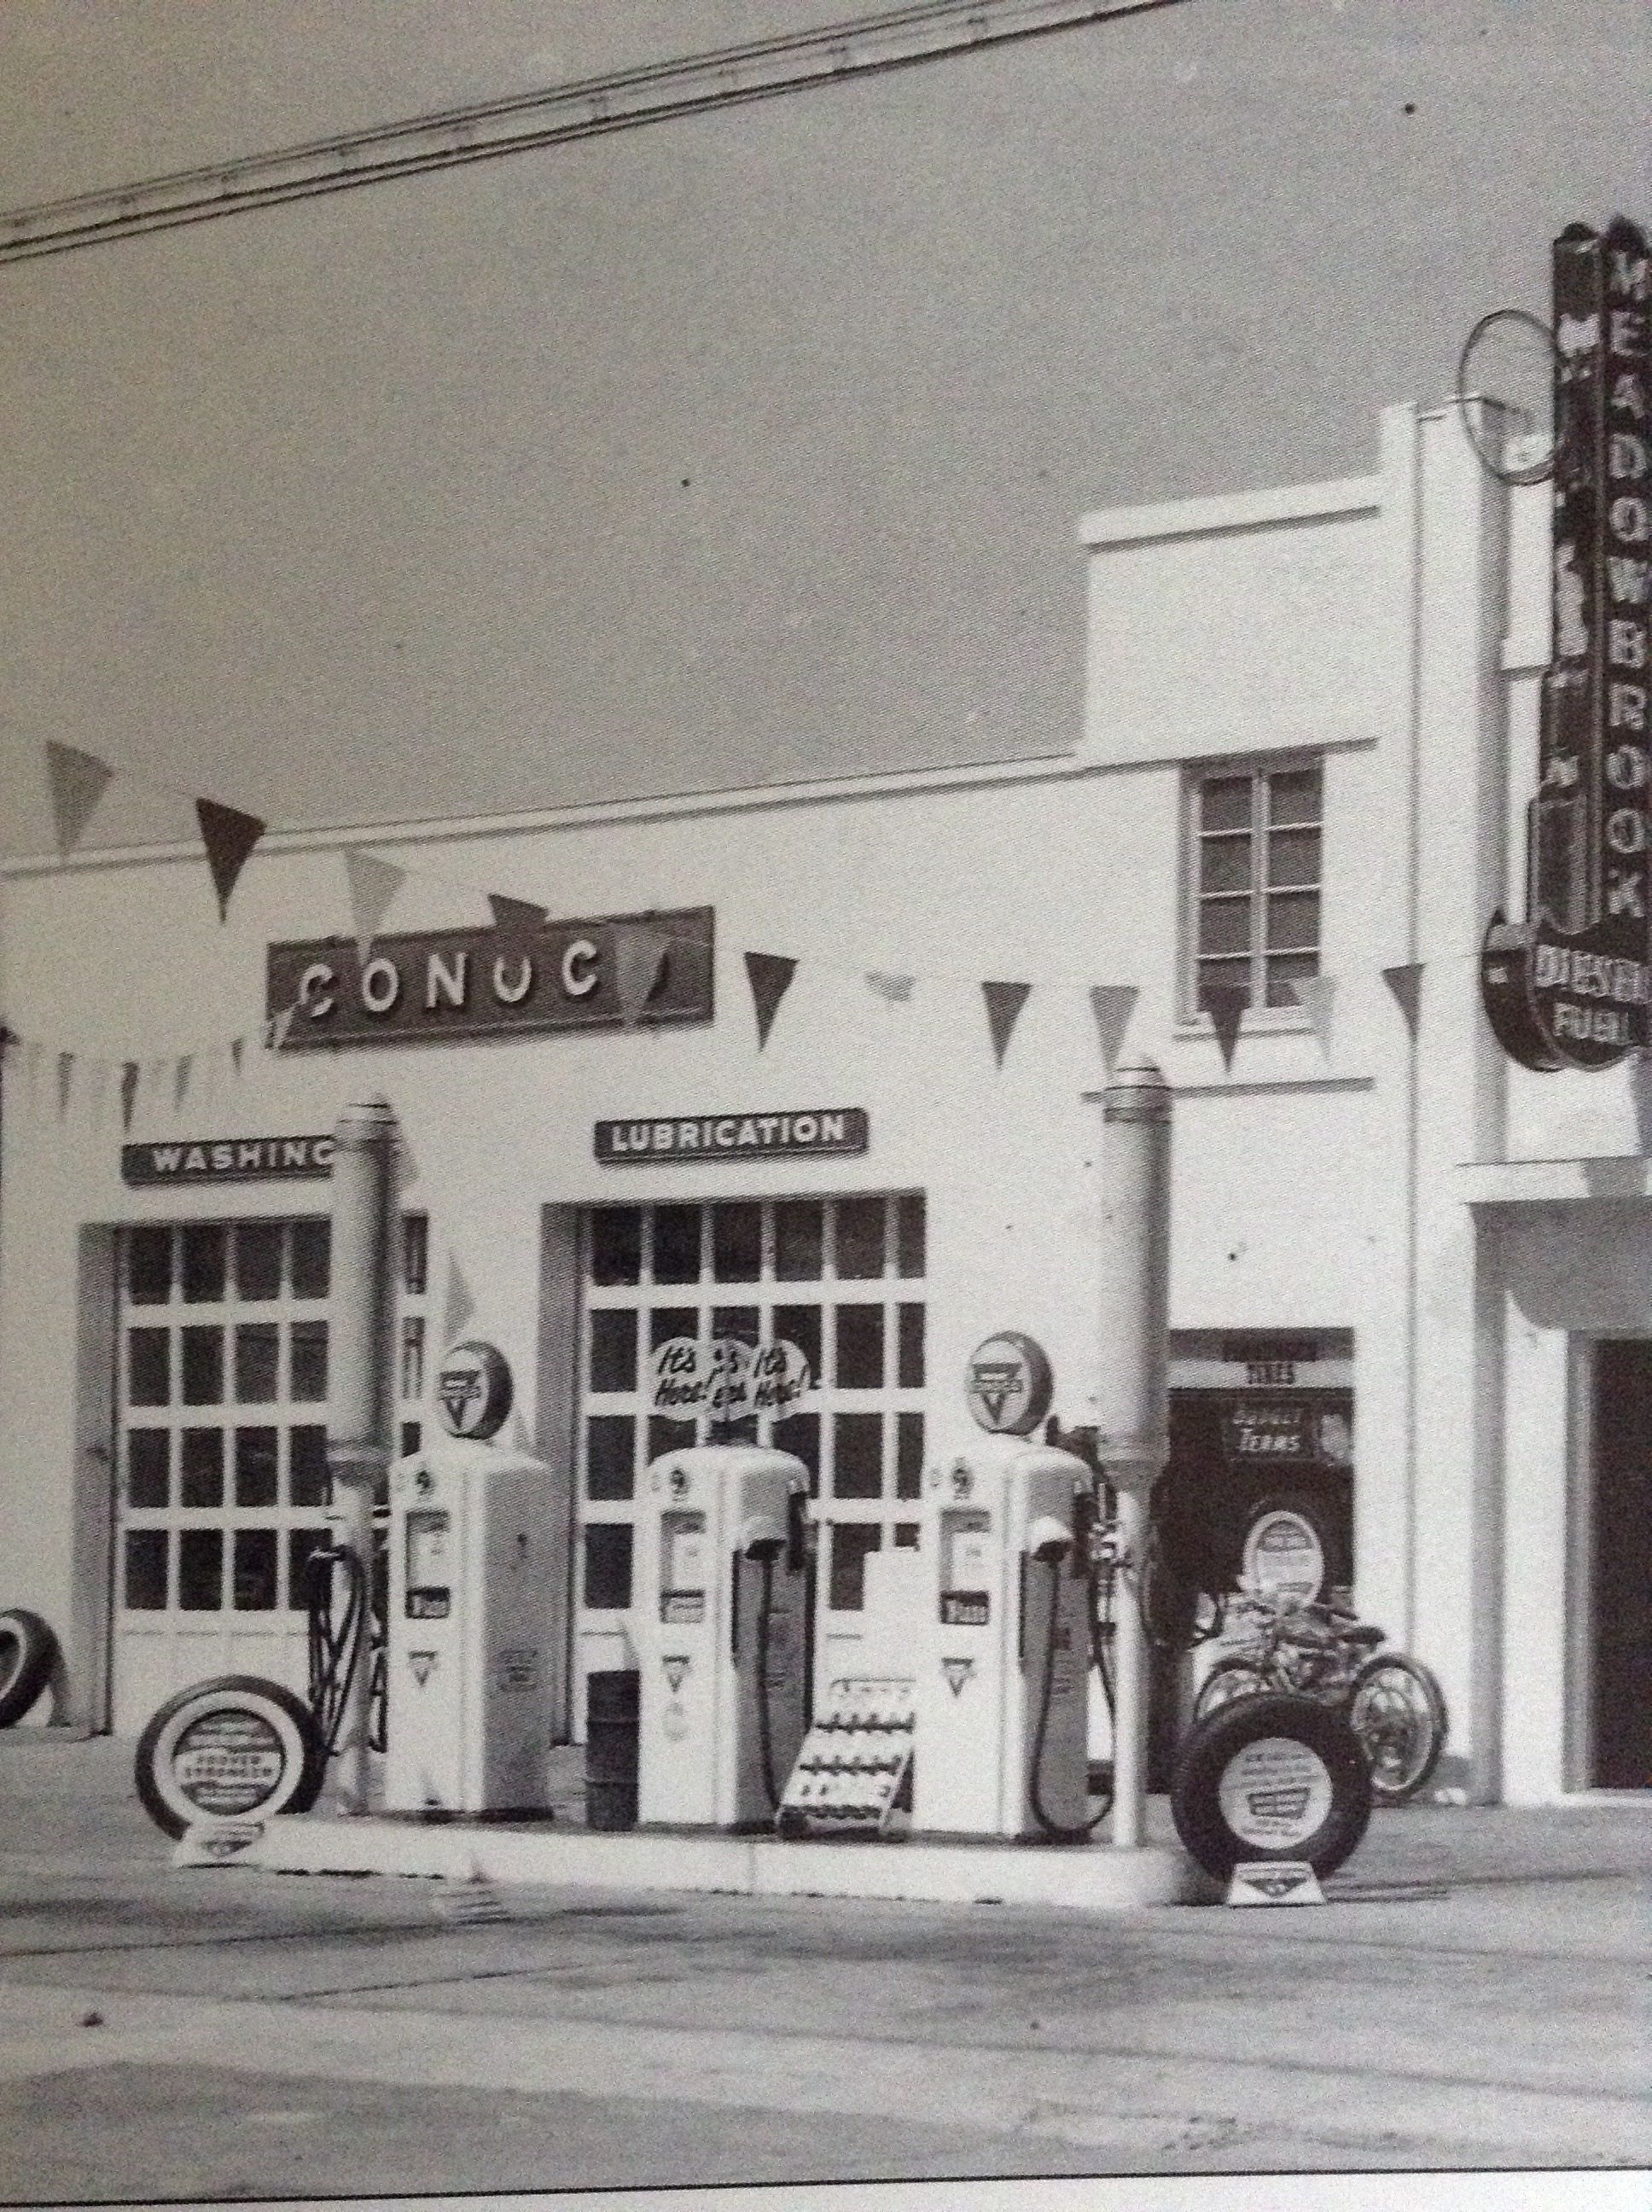 Conoco station 1950s | Old gas stations, Old gas pumps, Gas station